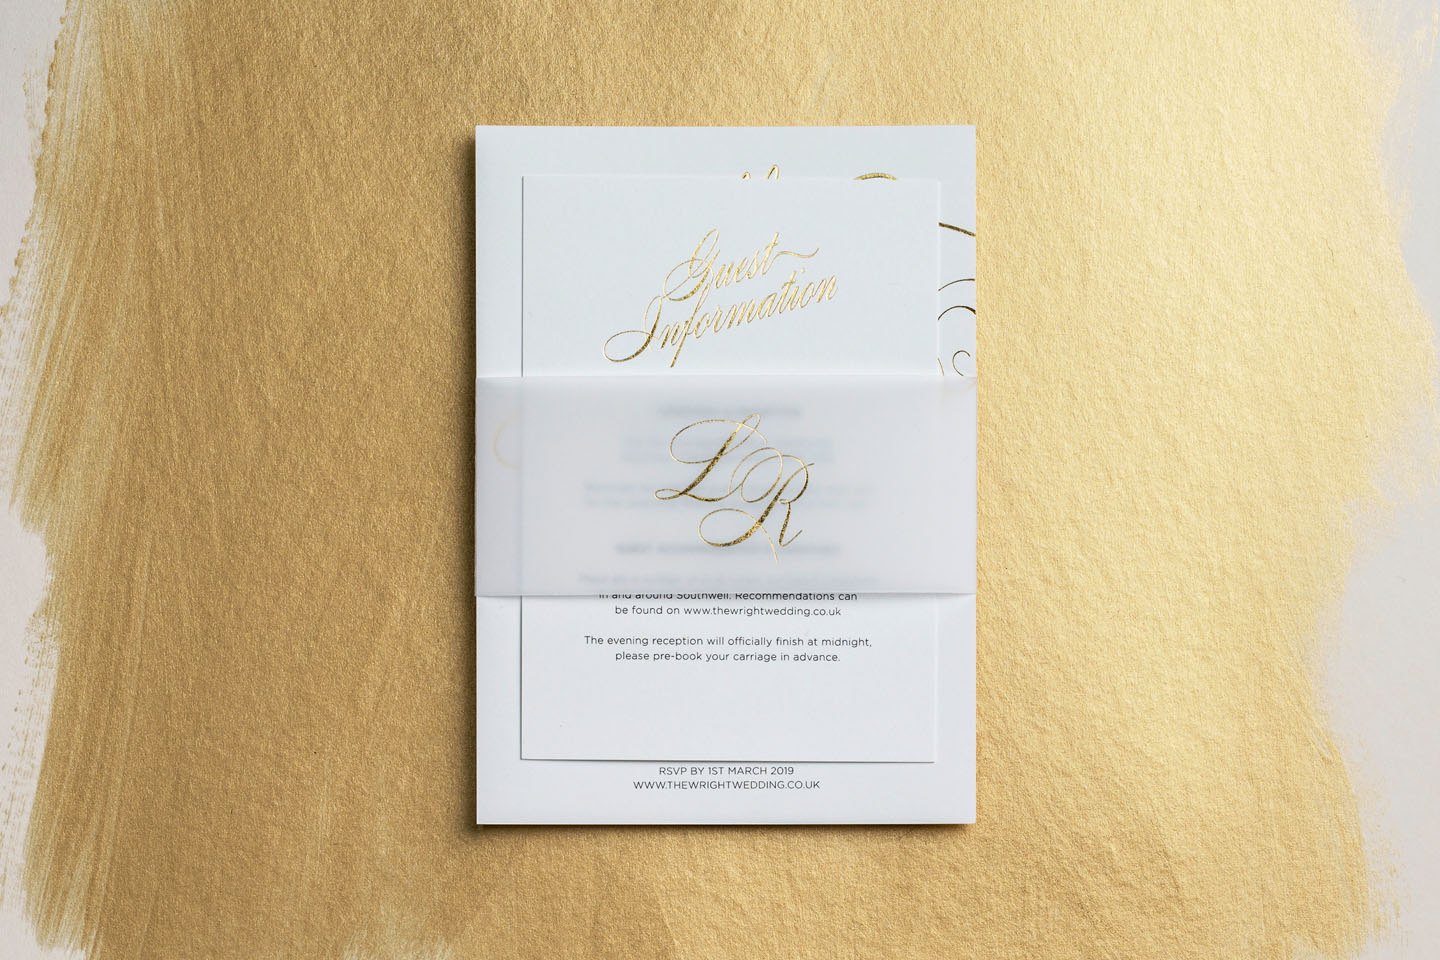 Gold foil wedding stationery set with vellum belly band | Wedding Trends 2019 | Foil Invite Company Blog